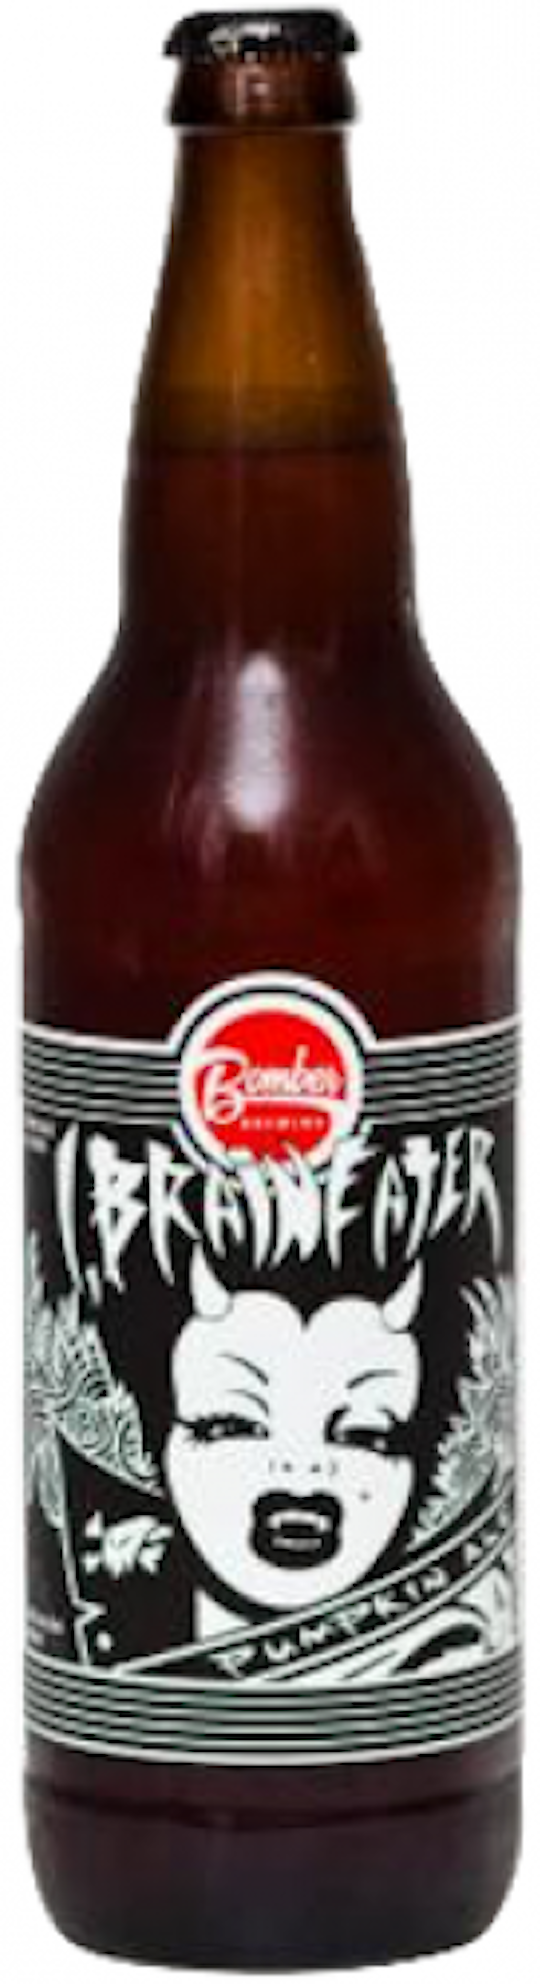 bomber-brewing-i-braineater_1510863189